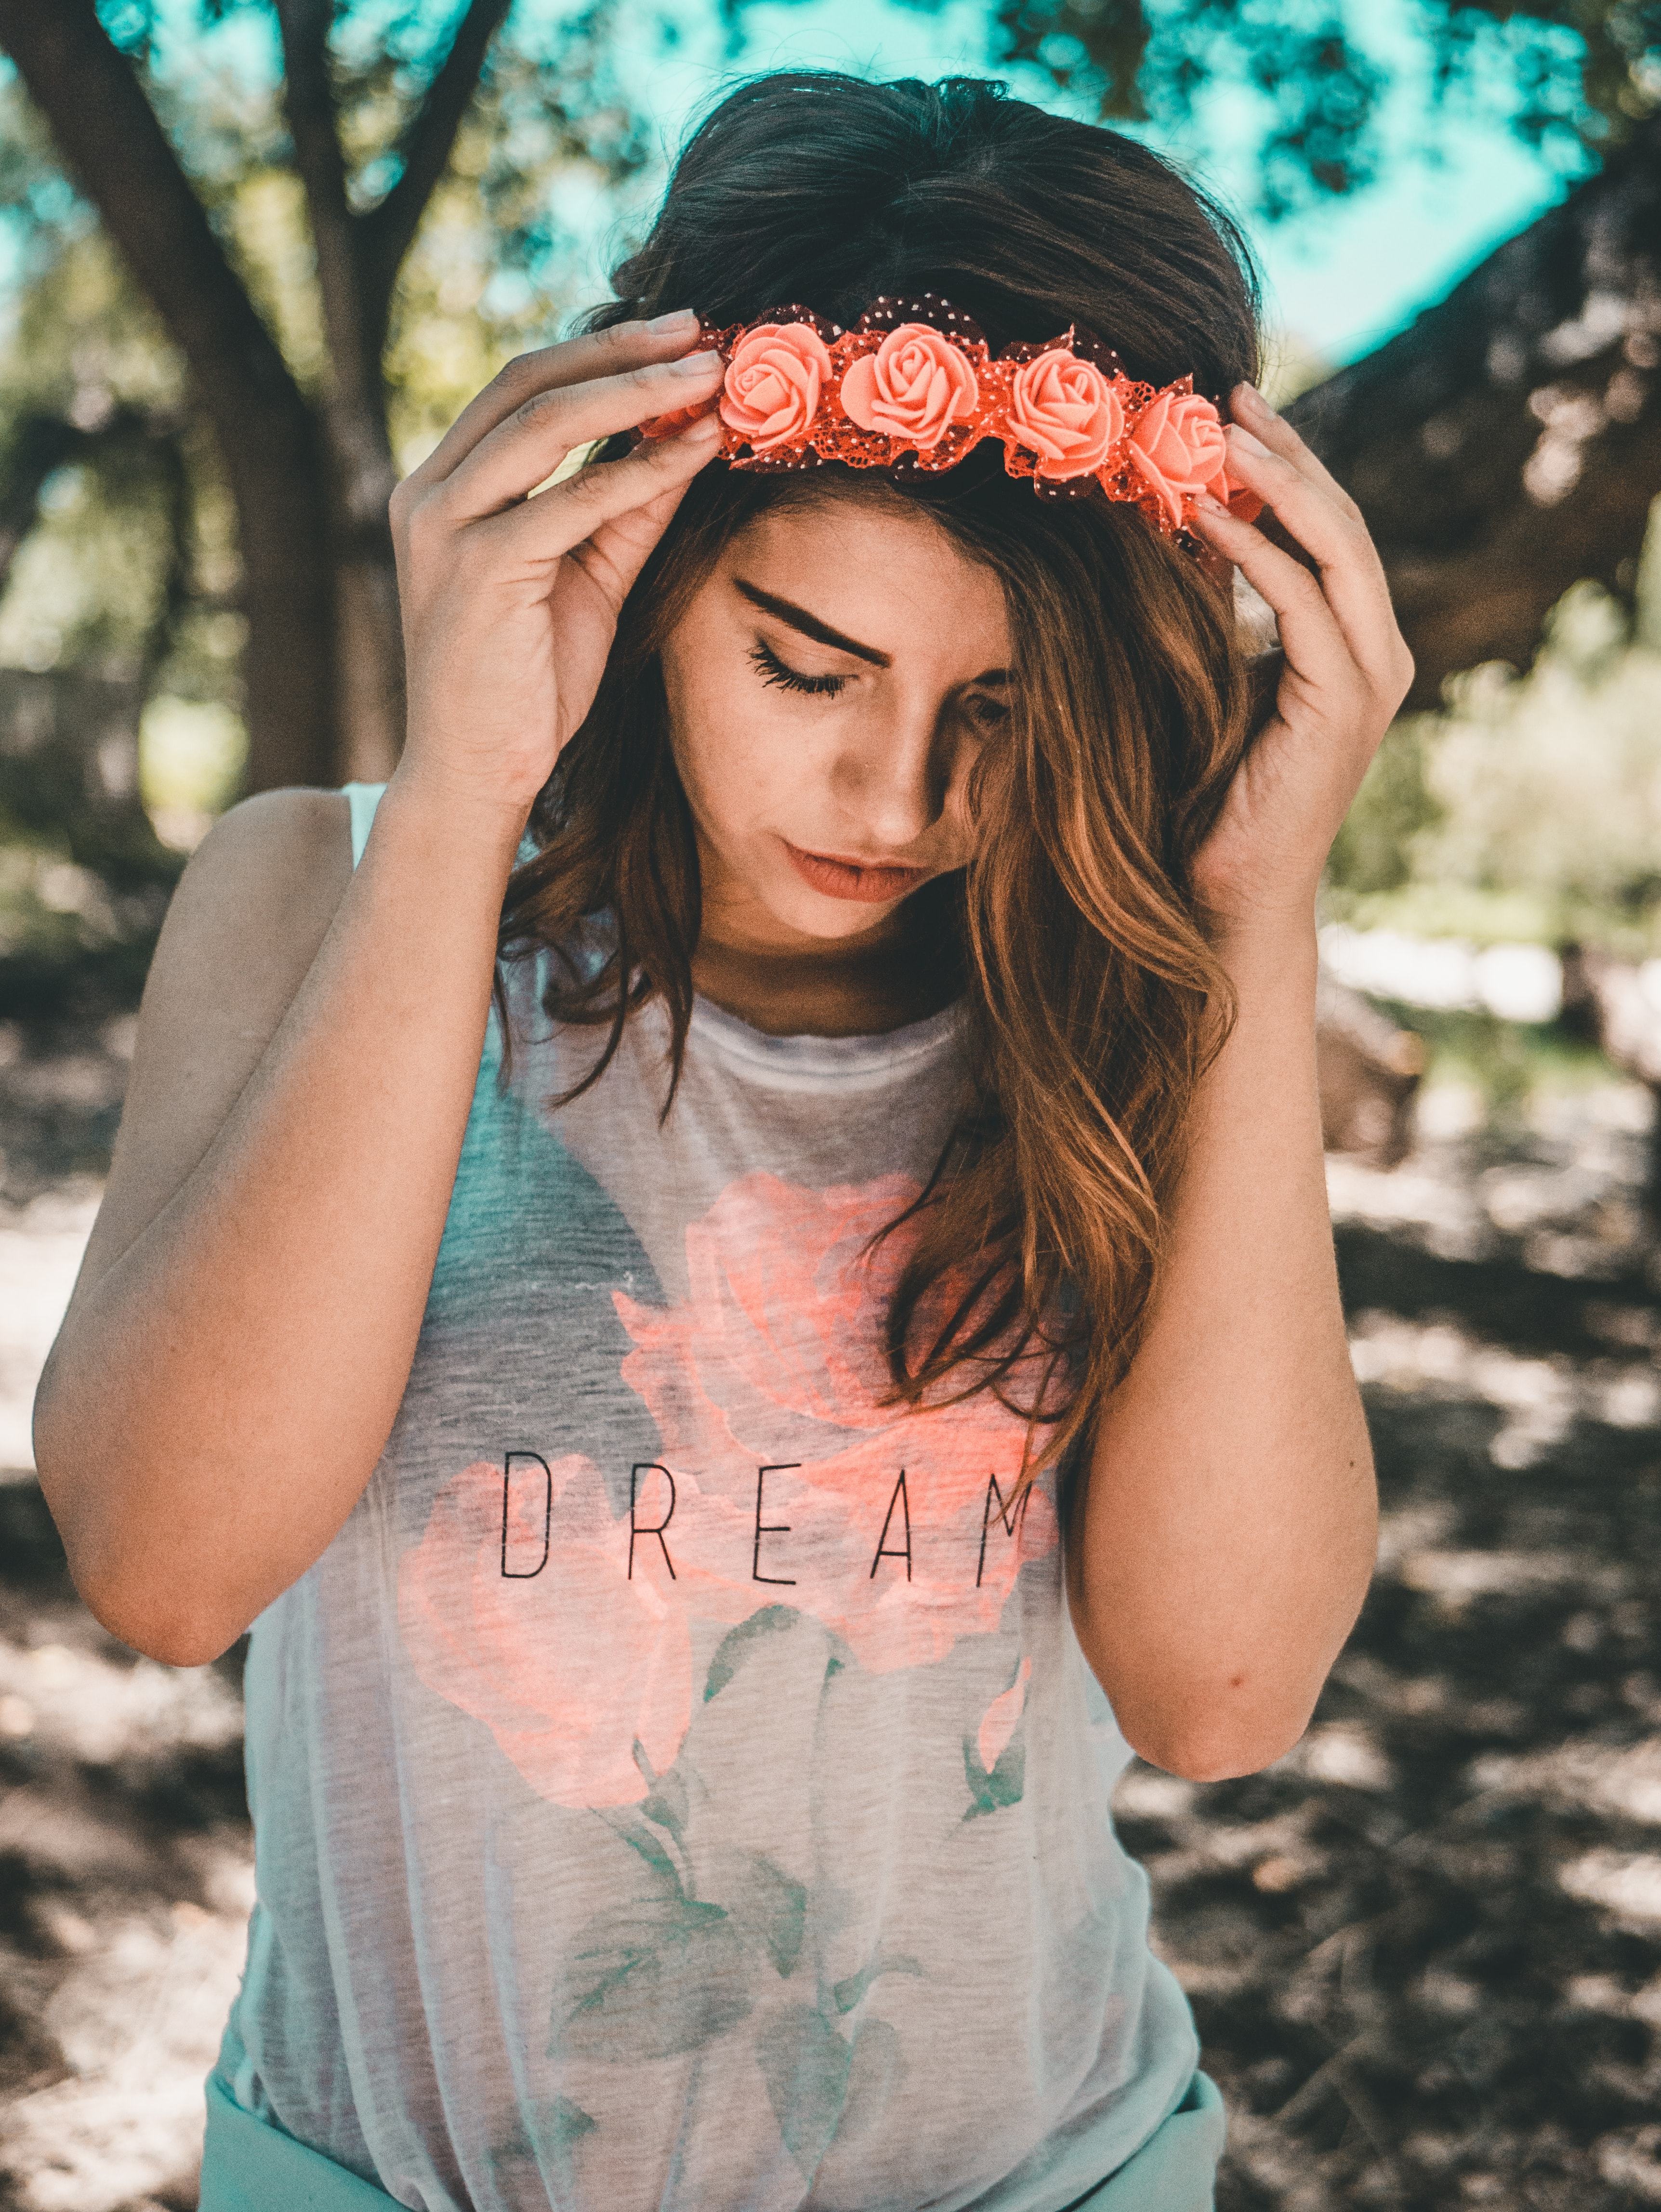 """Whimsical young woman with a flower crown headband and a """"dream"""" shirt"""